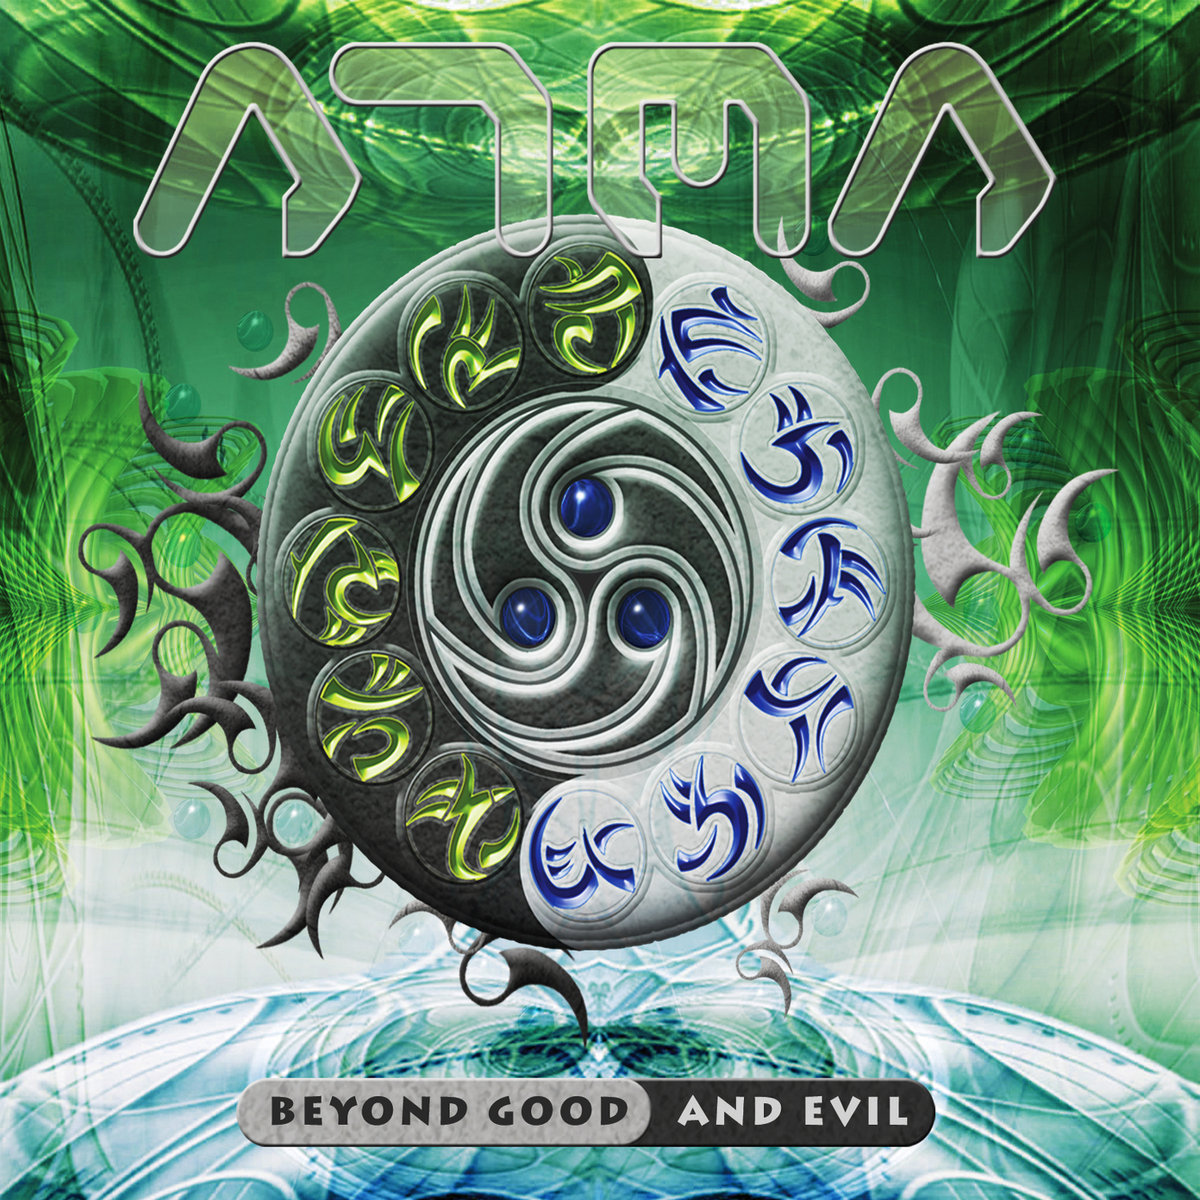 Atma - The Doors Of Perception @ 'Beyond Good and Evil' album (electronic, goa)